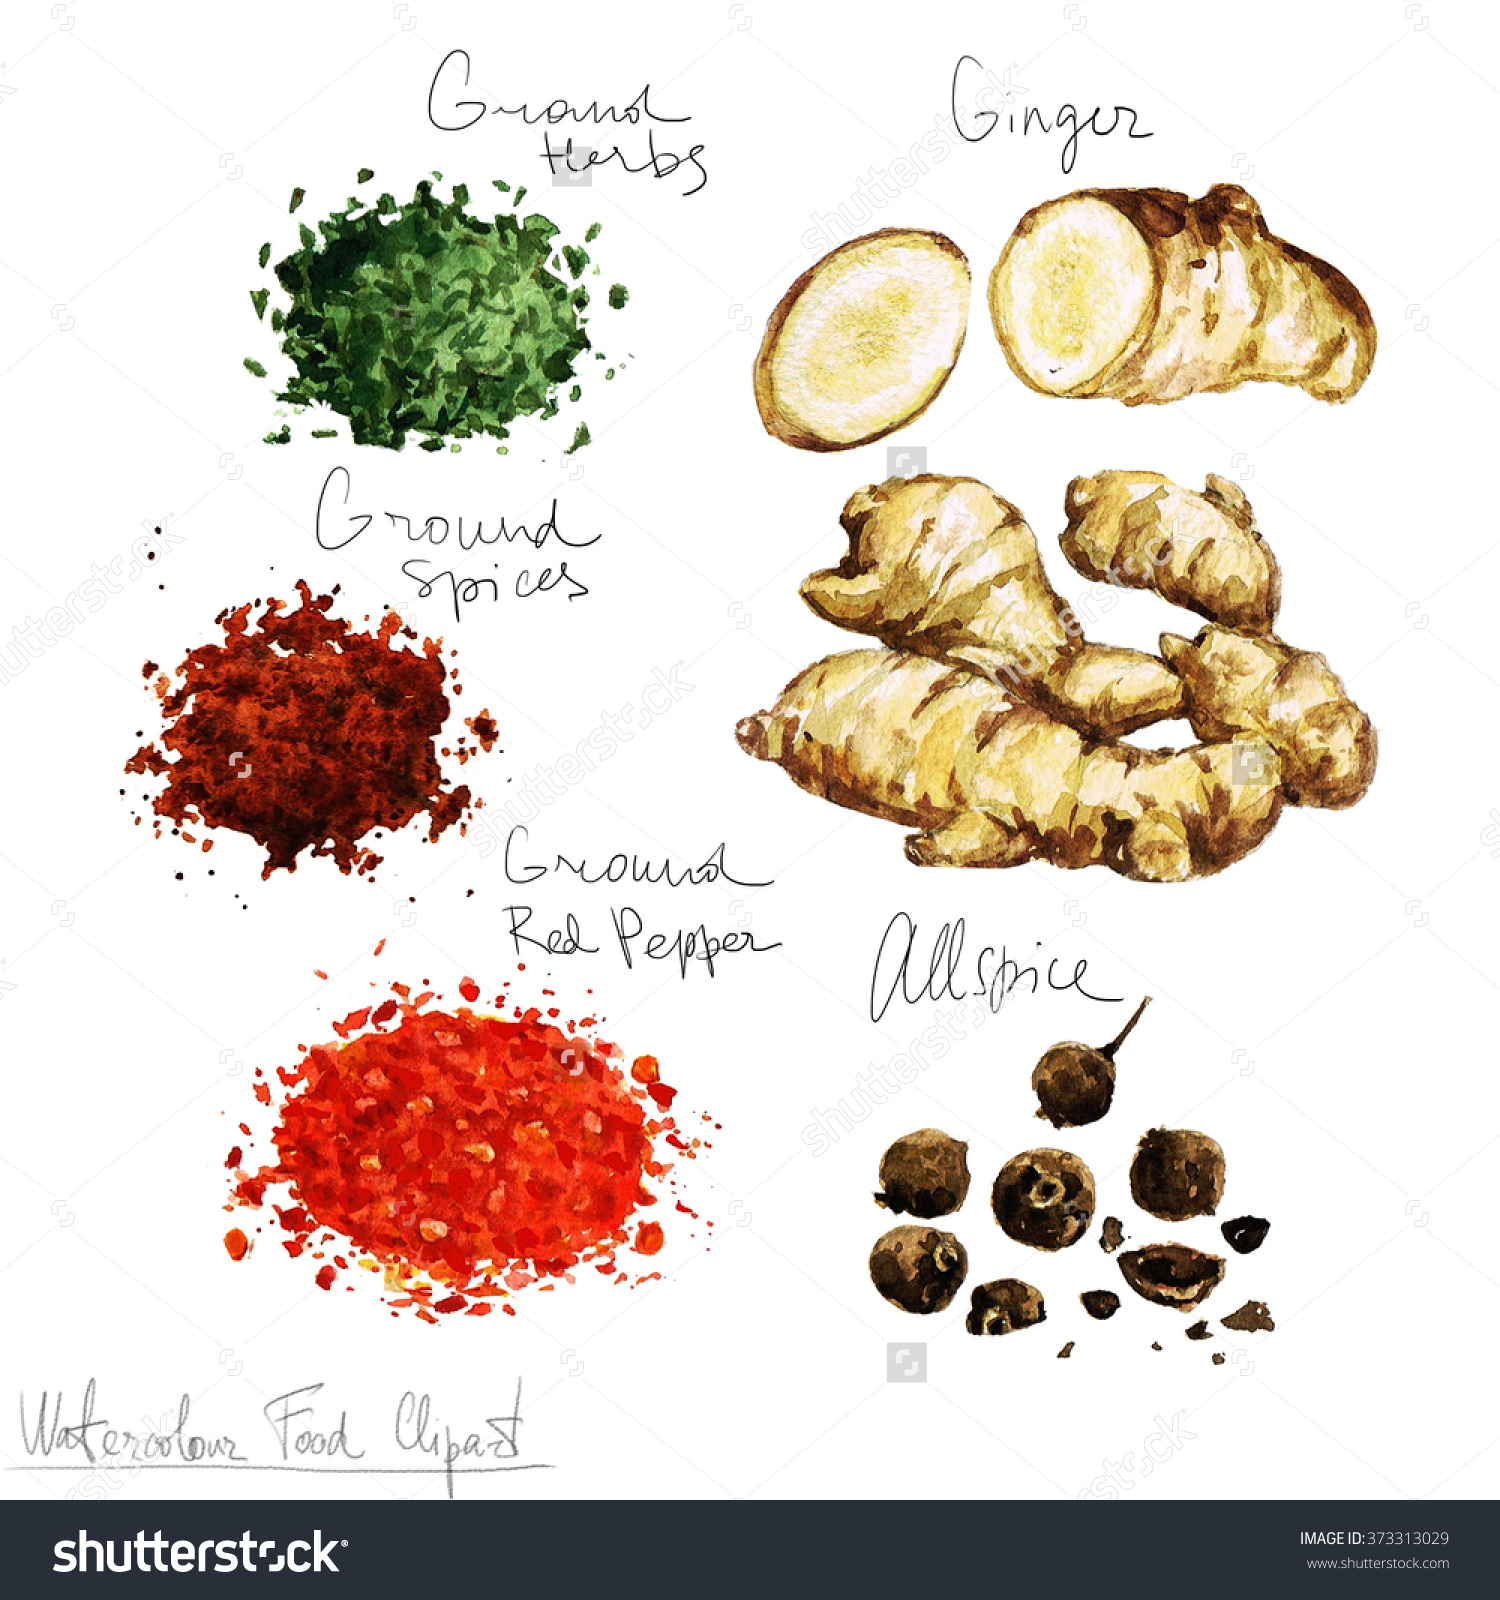 Watercolor Food Clipart Spices Stock Illustration 373313029.